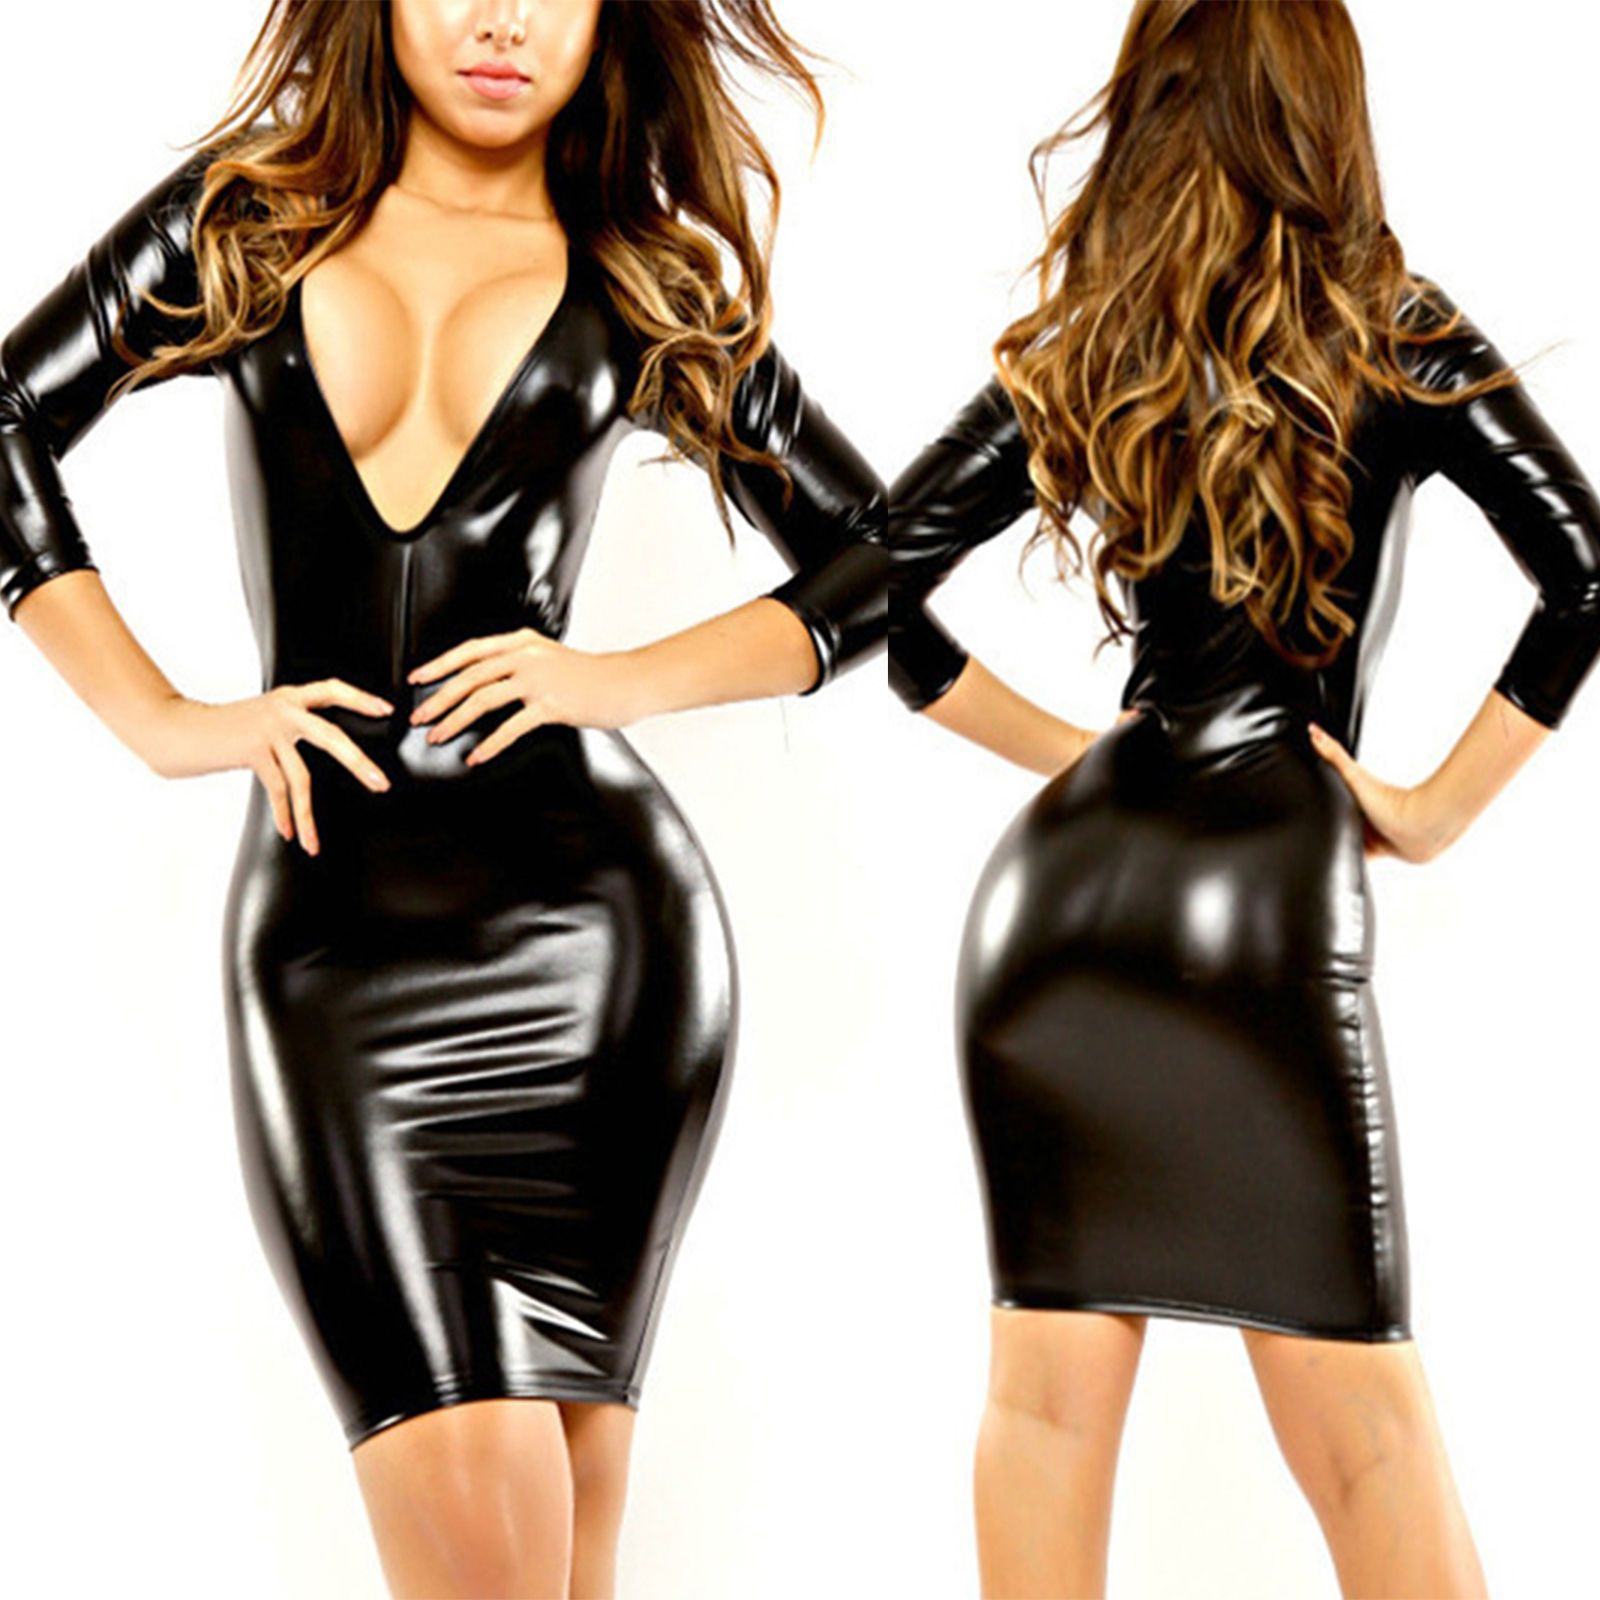 da28bb3cde52 Women Faux Leather Wet Look Bodycon Short Mini Party Dress Dance Clubwear  Black